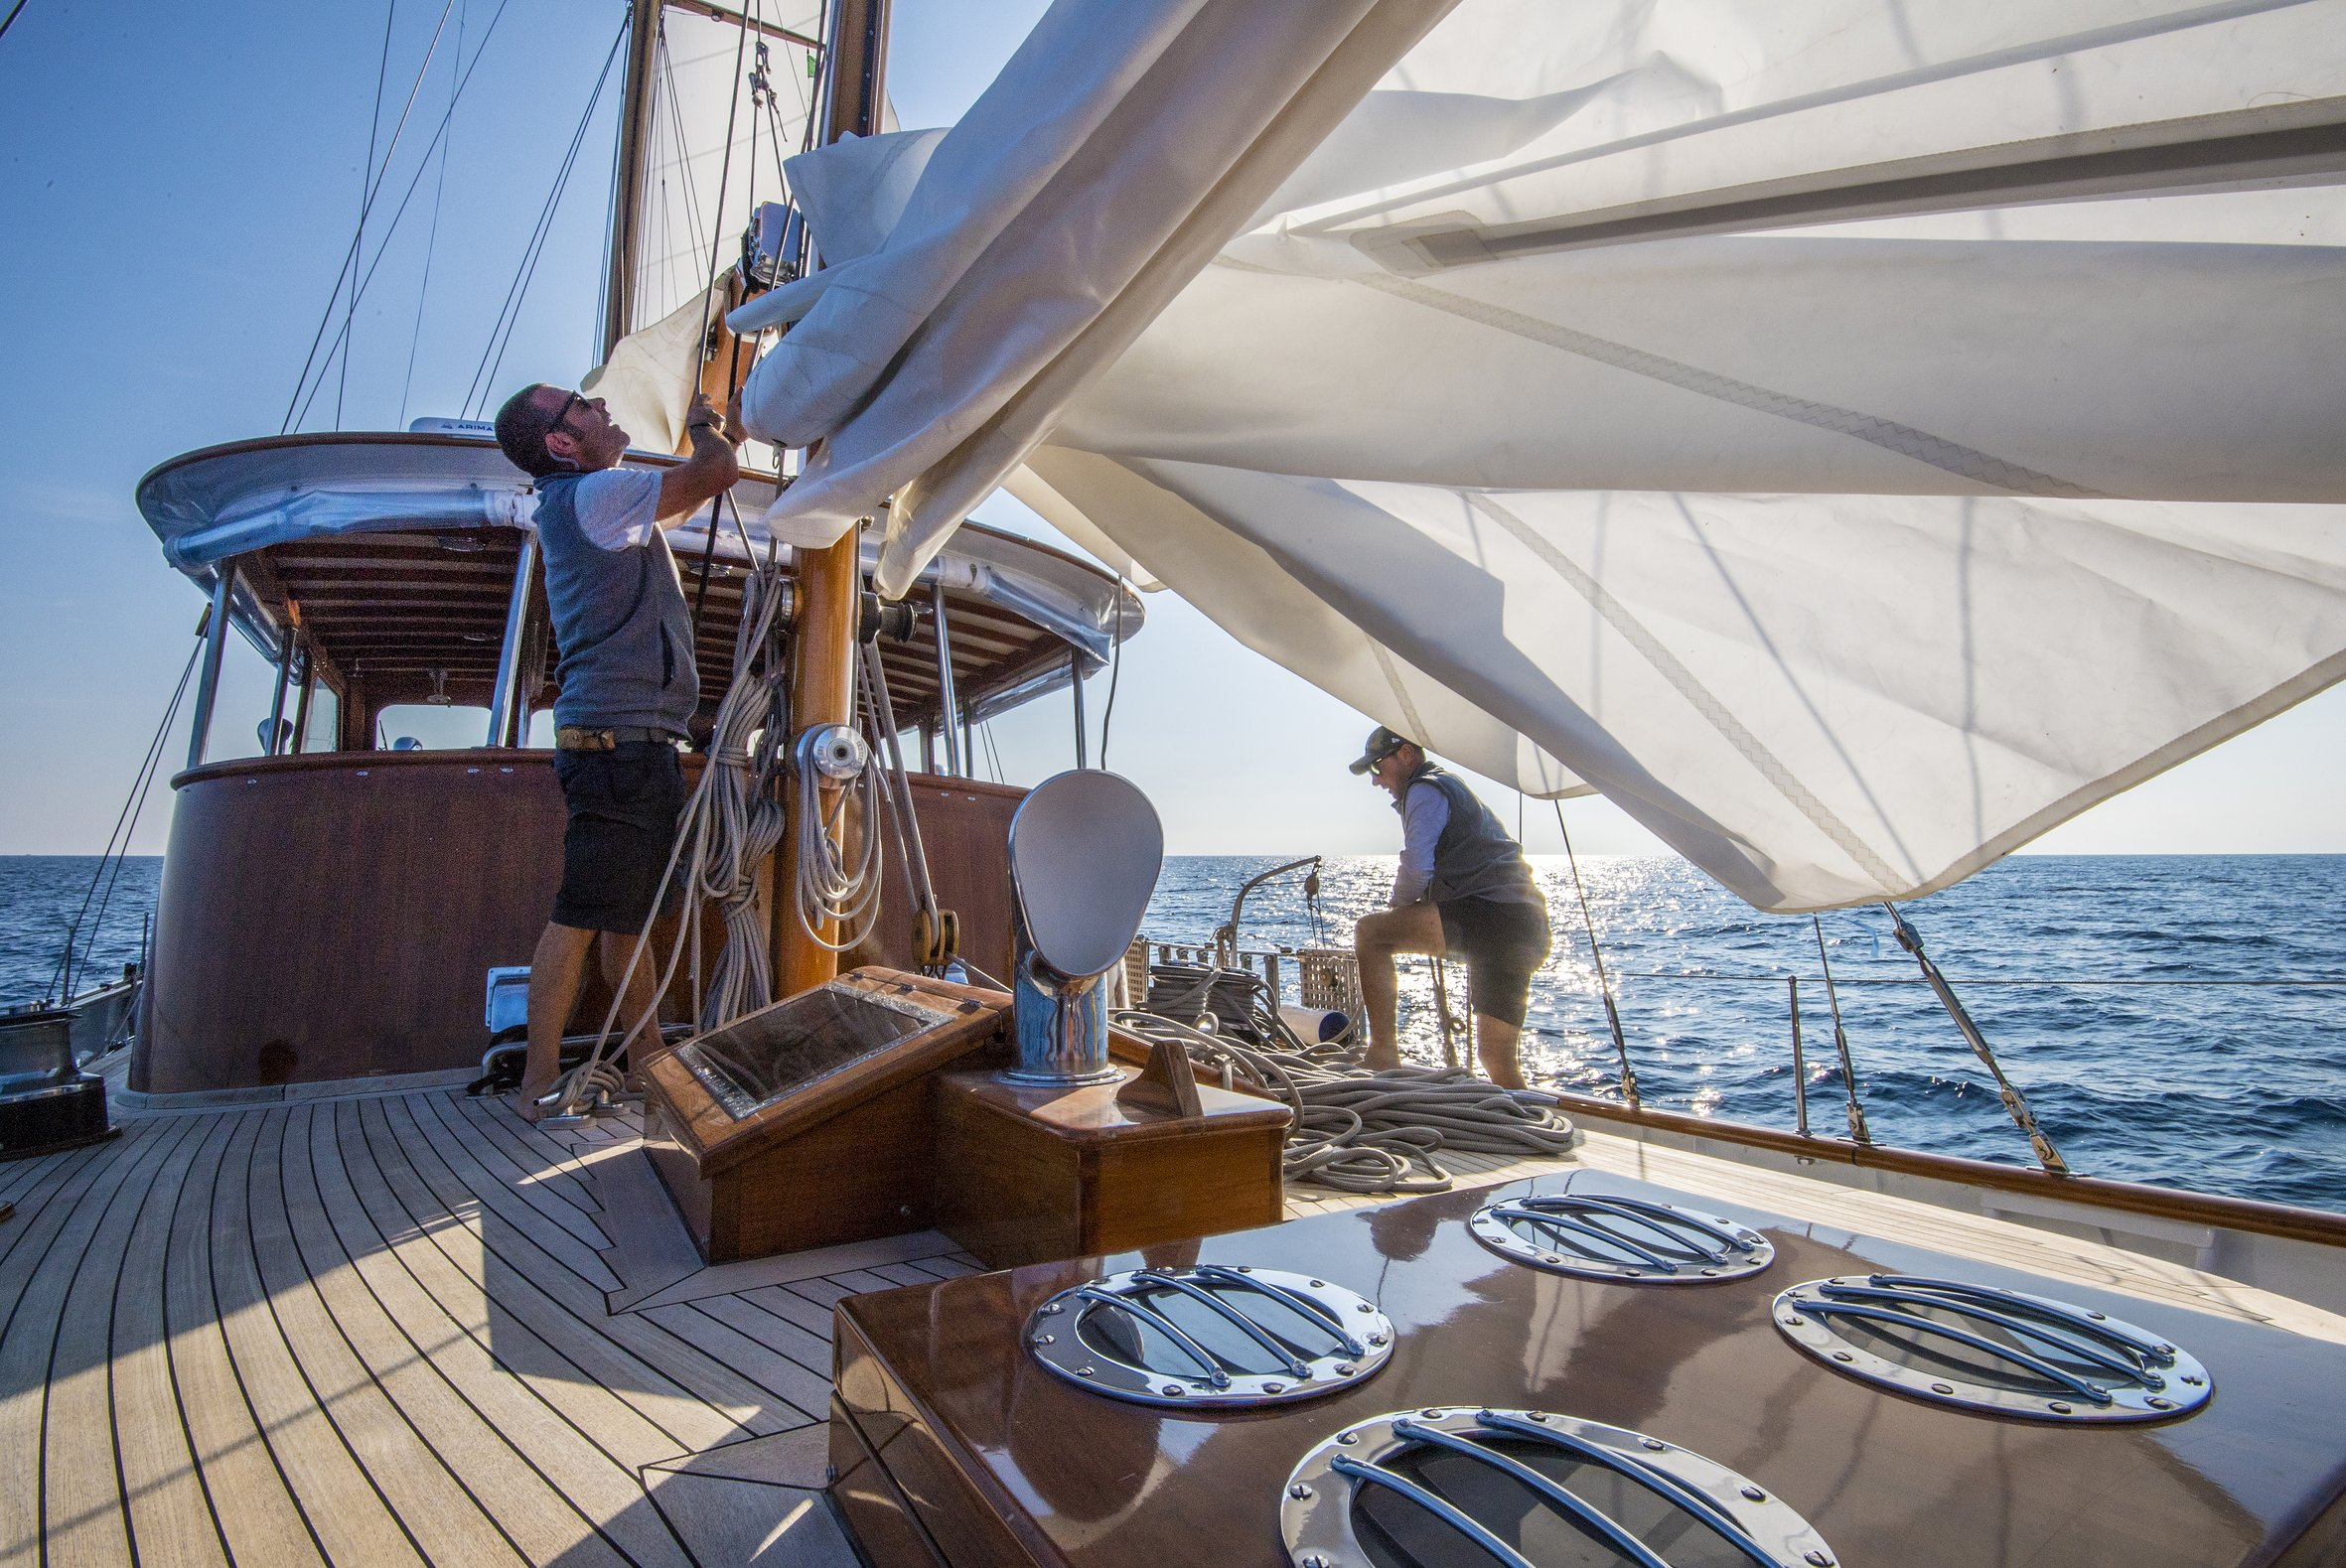 Fantastic Sailing Charter Experience With Professional Crew